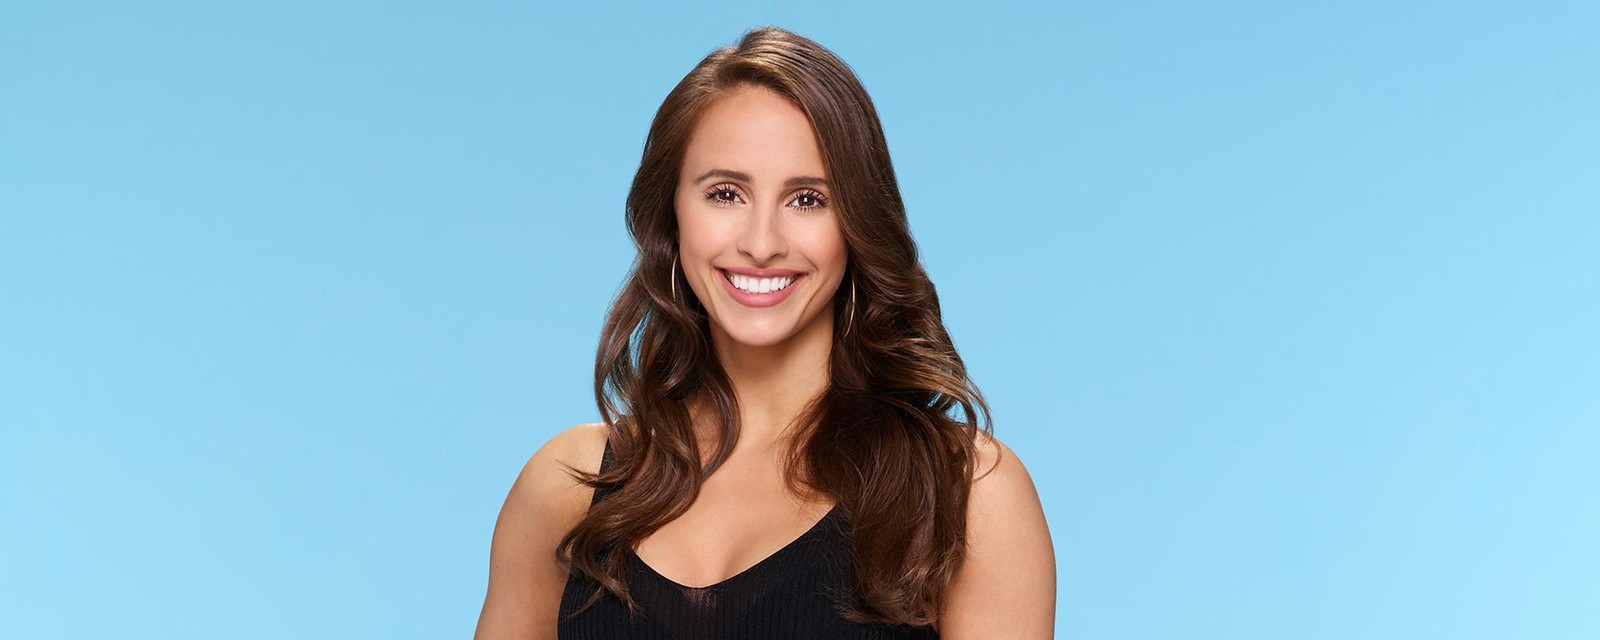 Captivating Vanessa | The Bachelor